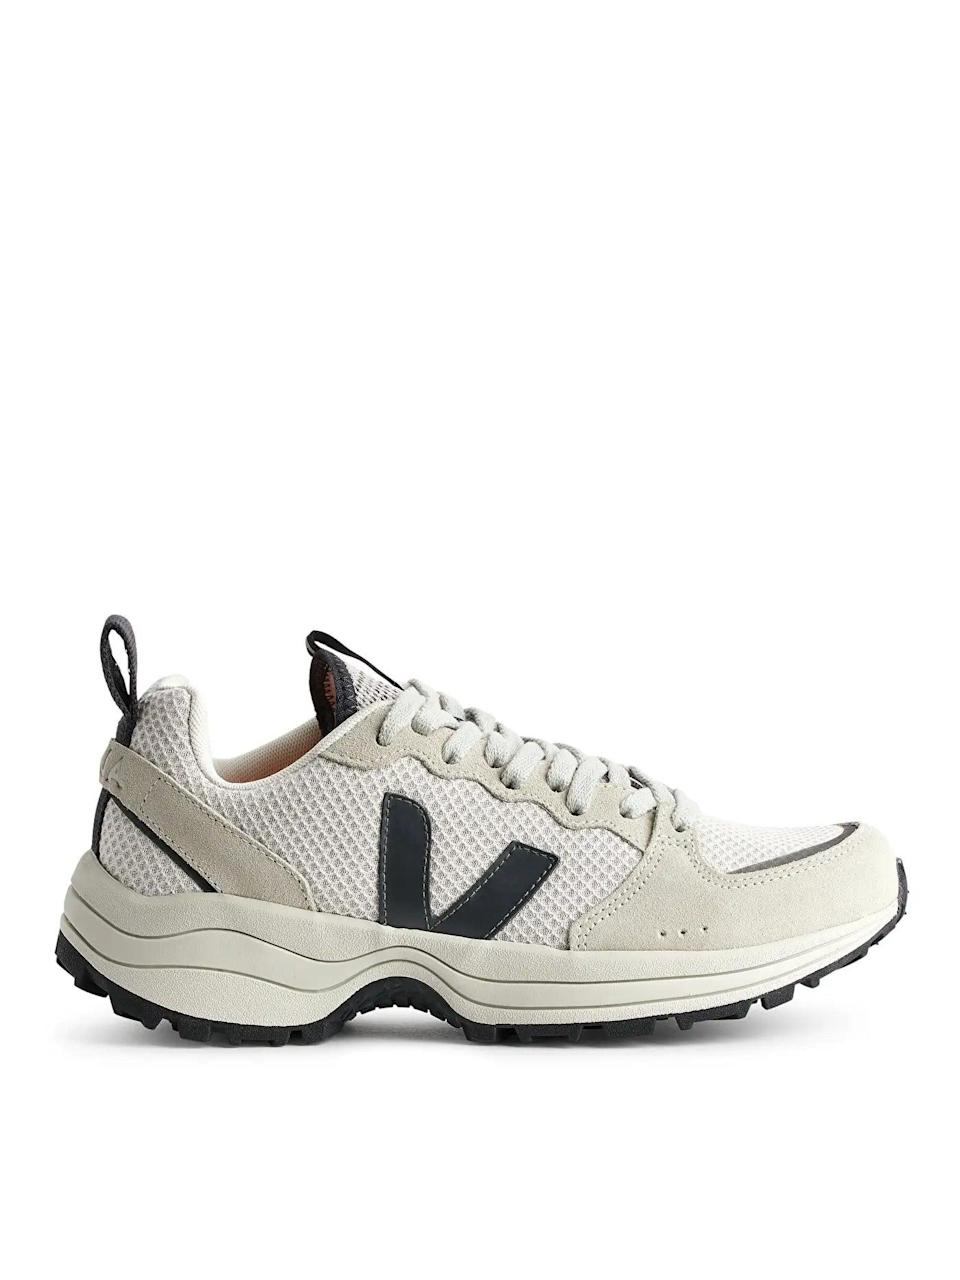 """If I'm going to have to start doing more than 300 steps a day now we're out more, I'd prefer to do so in these dream cloudlike sneaks. <br><br><strong>VEJA</strong> Venturi Trainers, $, available at <a href=""""https://www.arket.com/en_dkk/women/shoes/product.veja-venturi-trainers-black.0841294001.html"""" rel=""""nofollow noopener"""" target=""""_blank"""" data-ylk=""""slk:Arket"""" class=""""link rapid-noclick-resp"""">Arket</a>"""